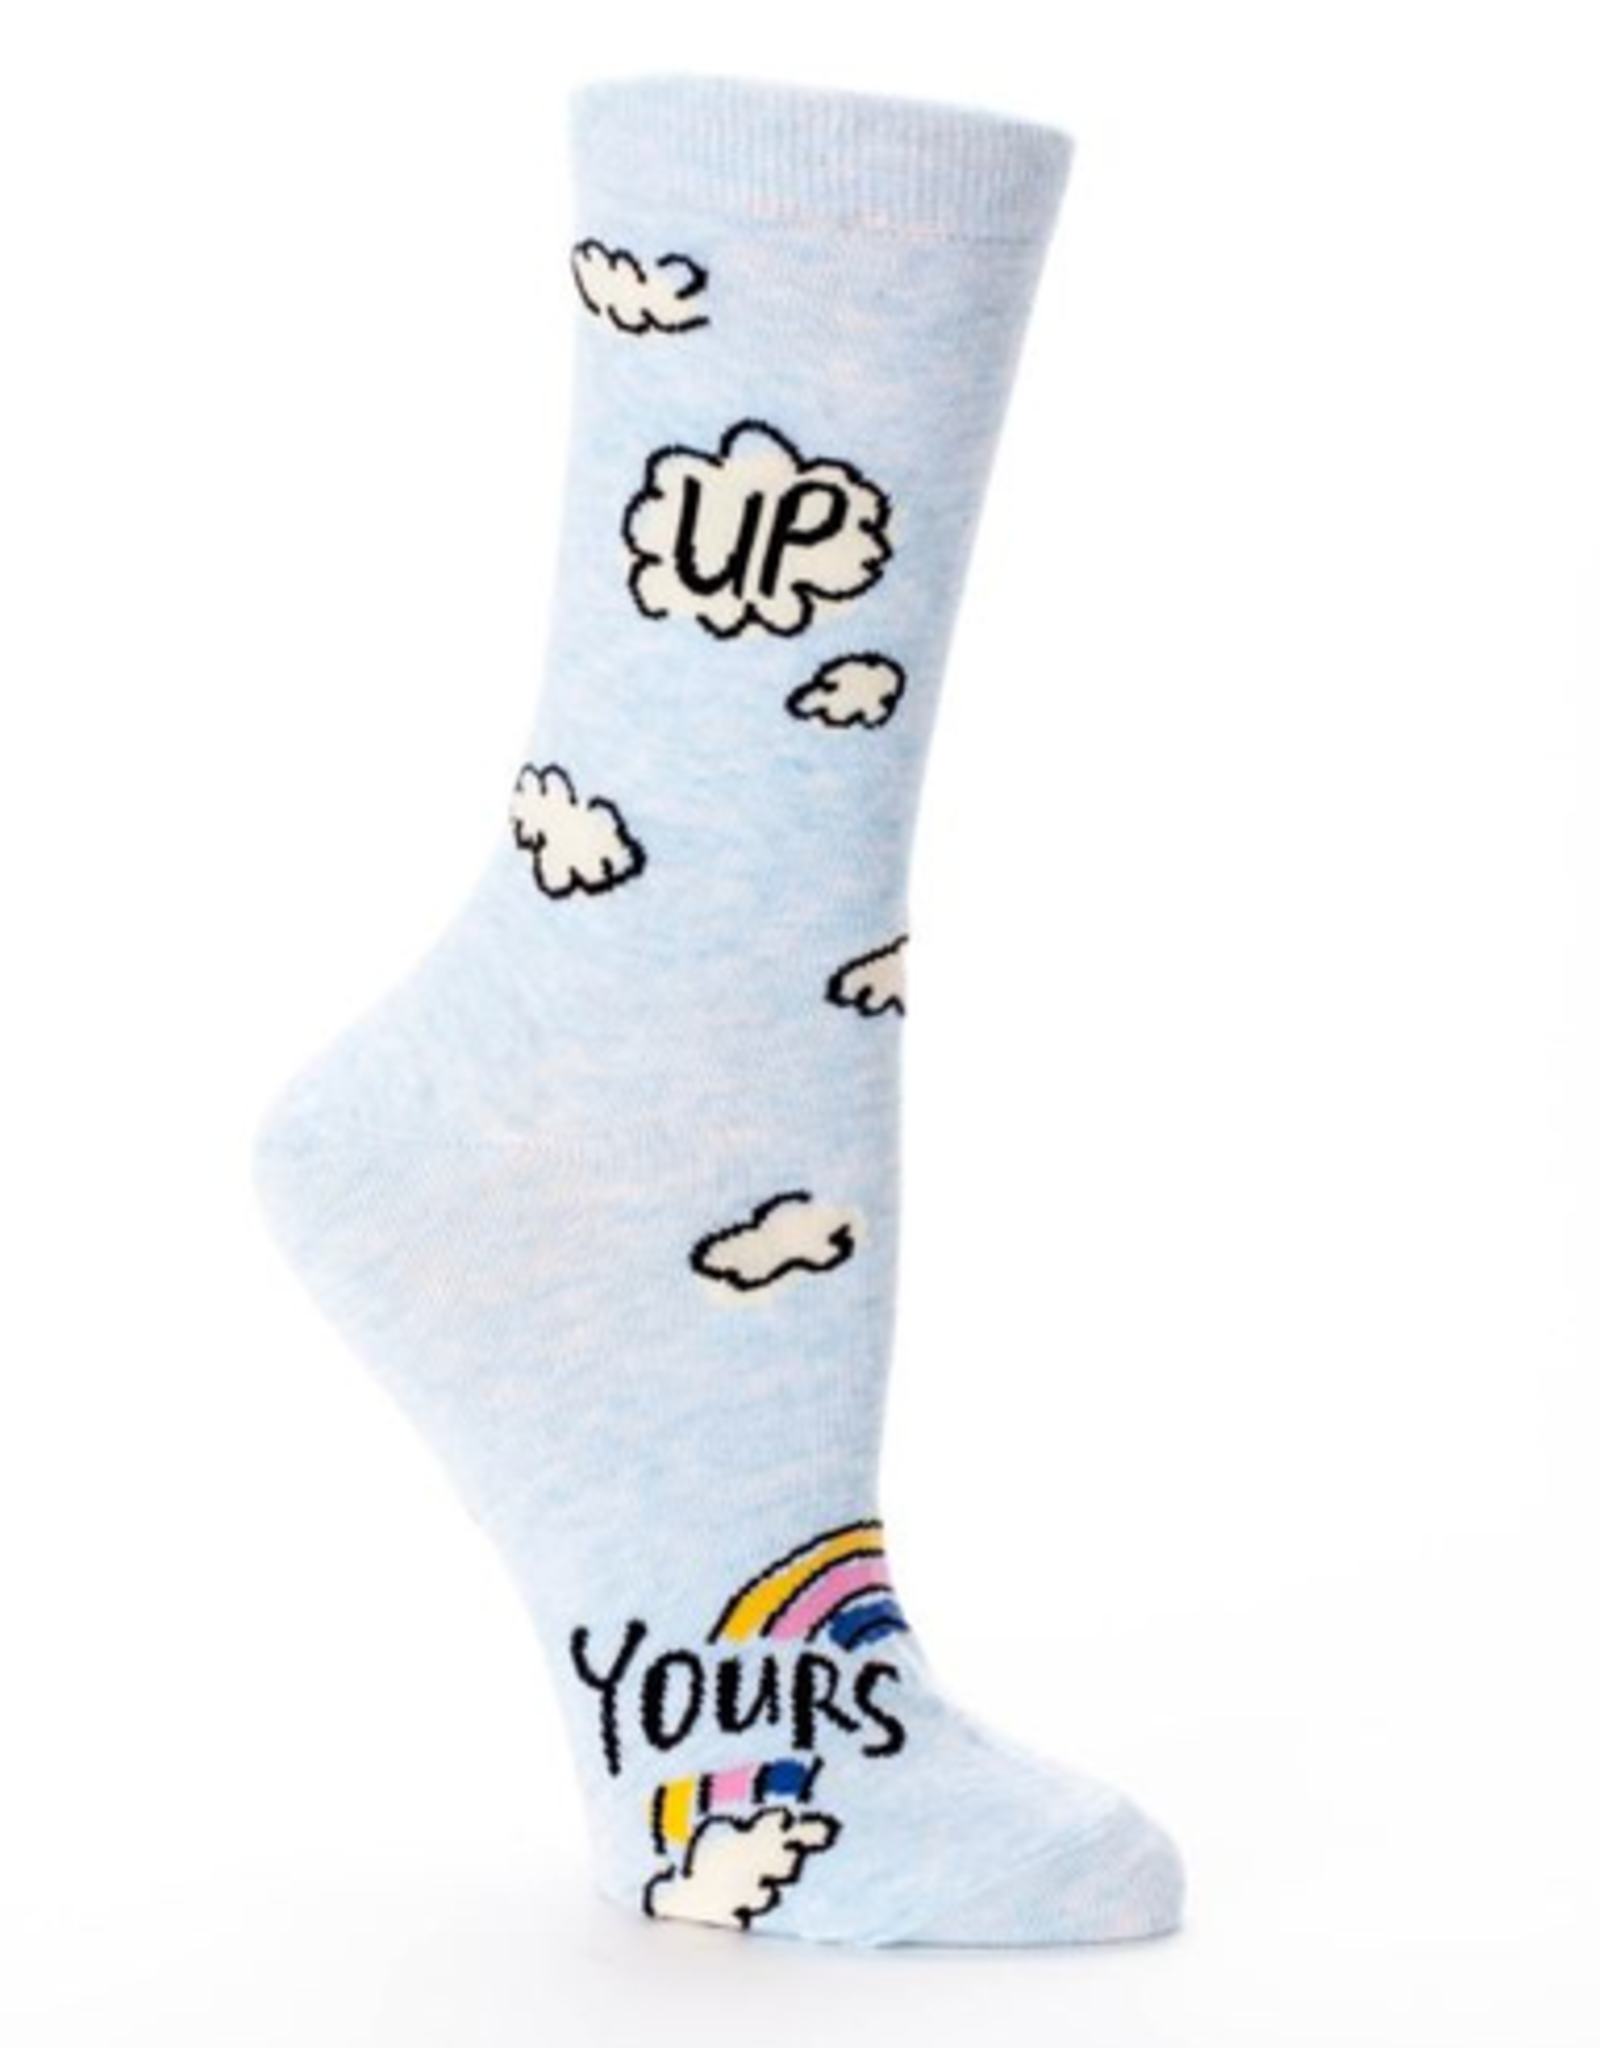 Up Yours Women's Crew Socks